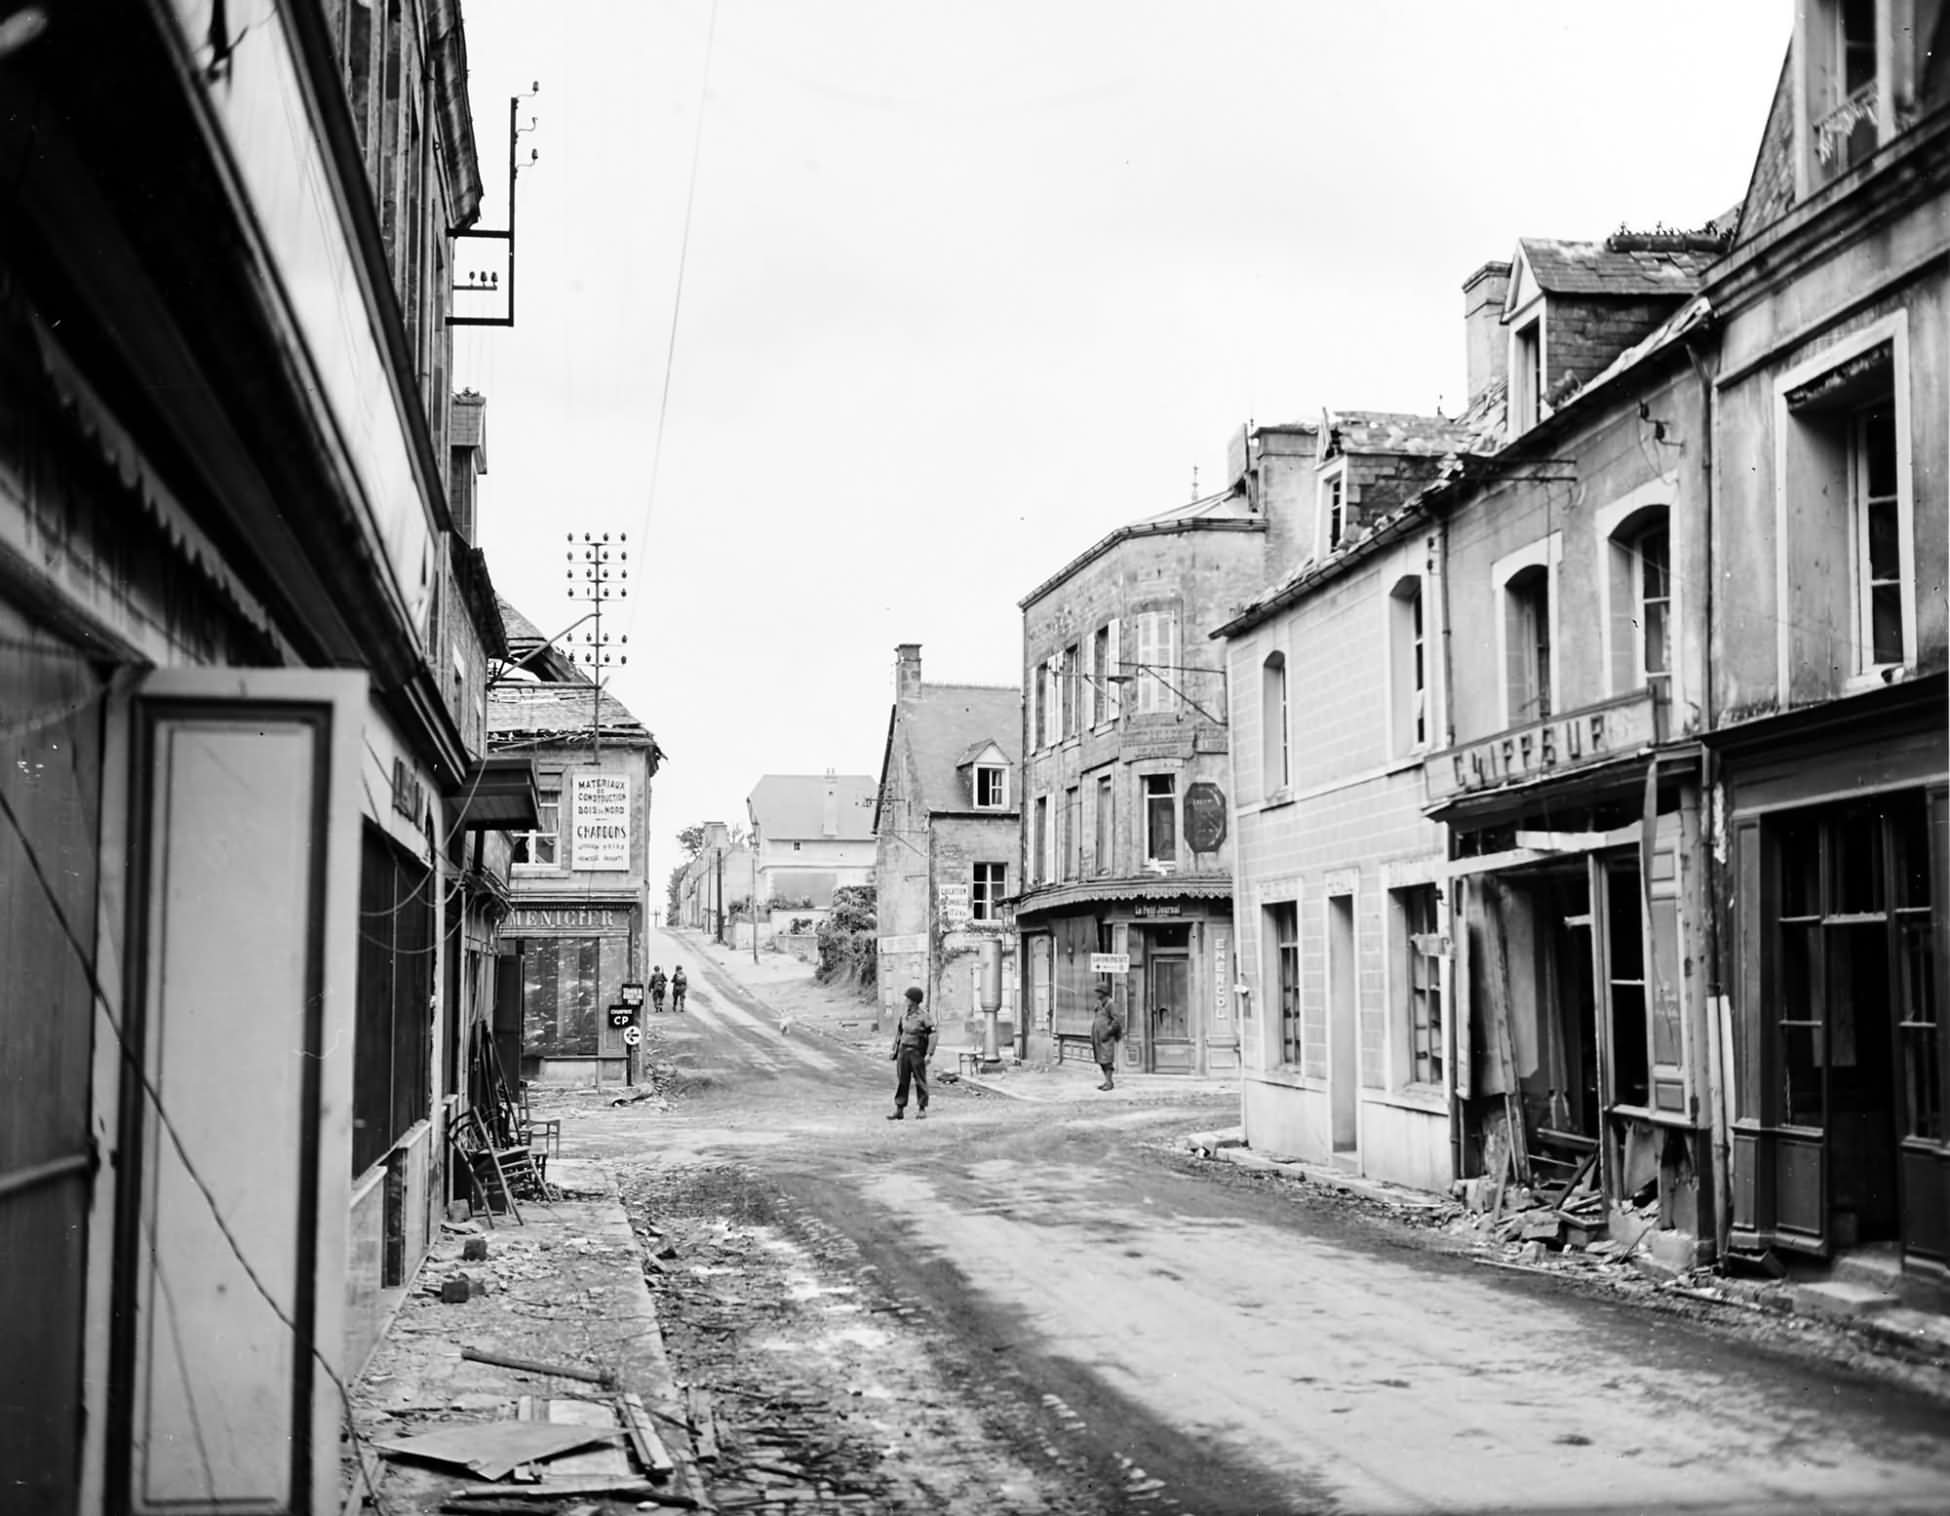 Street scene in St. Mere Eglise after its capture by the US Army 10 June 1944